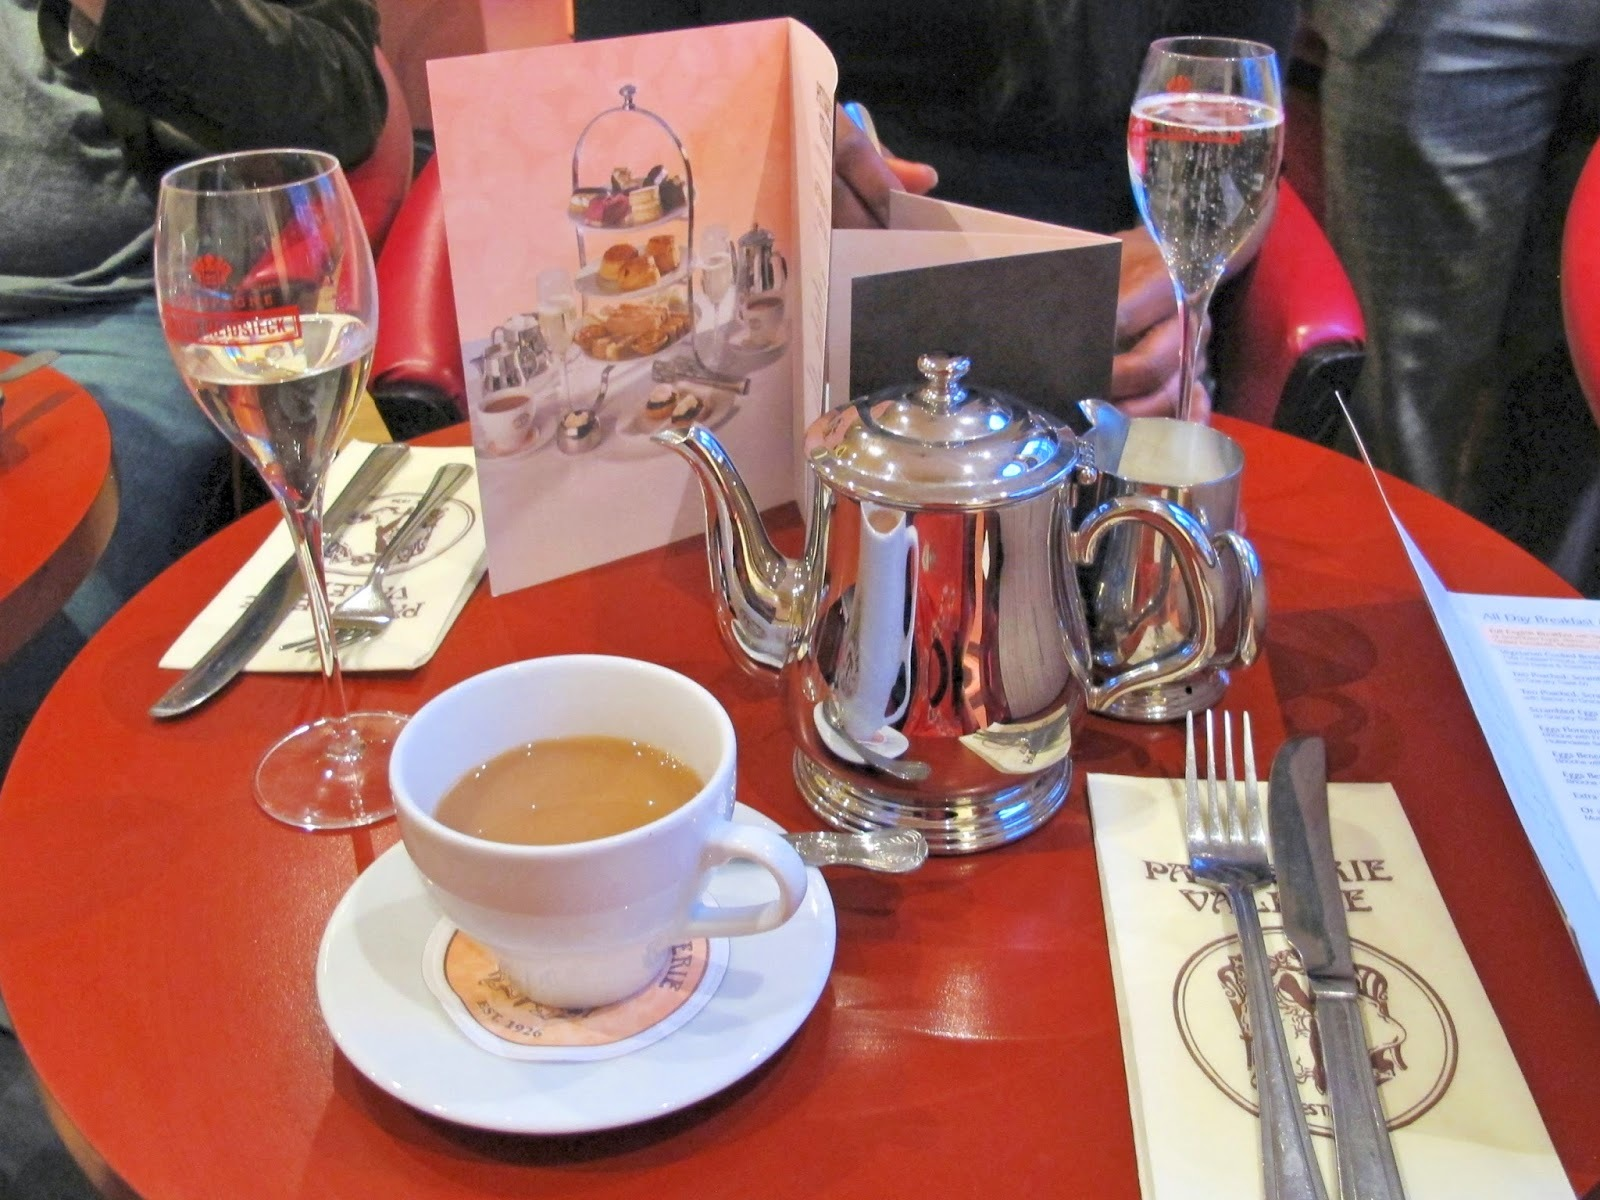 Review: Patisserie Valerie Afternoon Tea